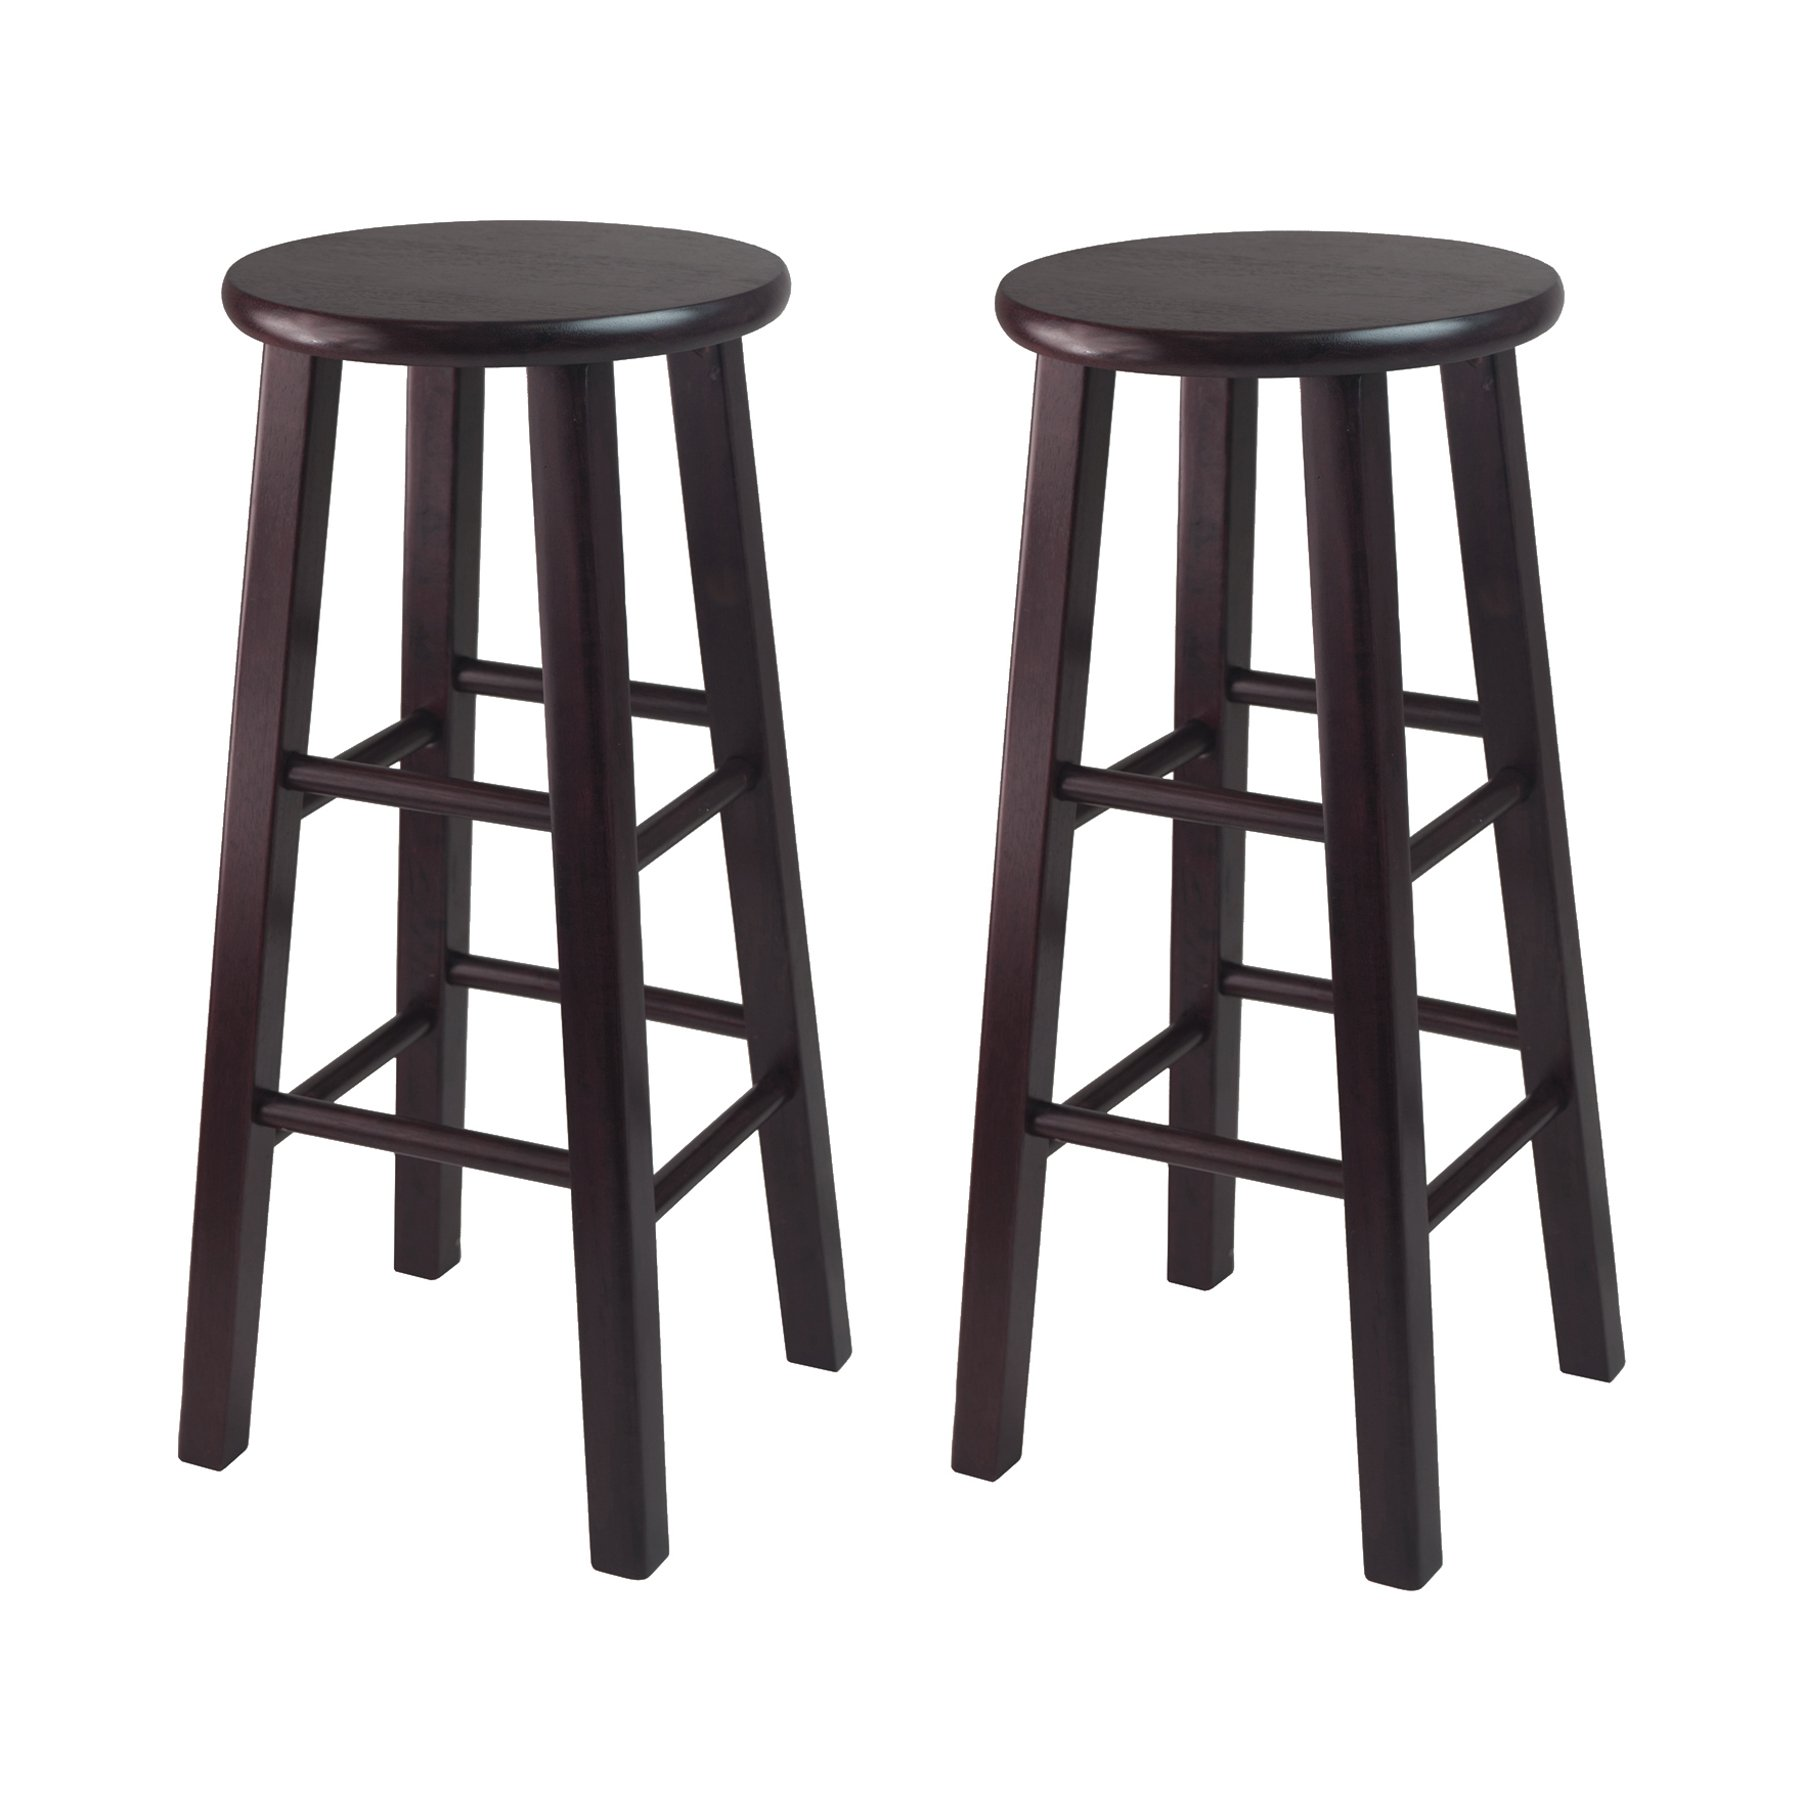 Winsome Bar Stool with Square Legs, 29-Inch, Espresso, Set of 2